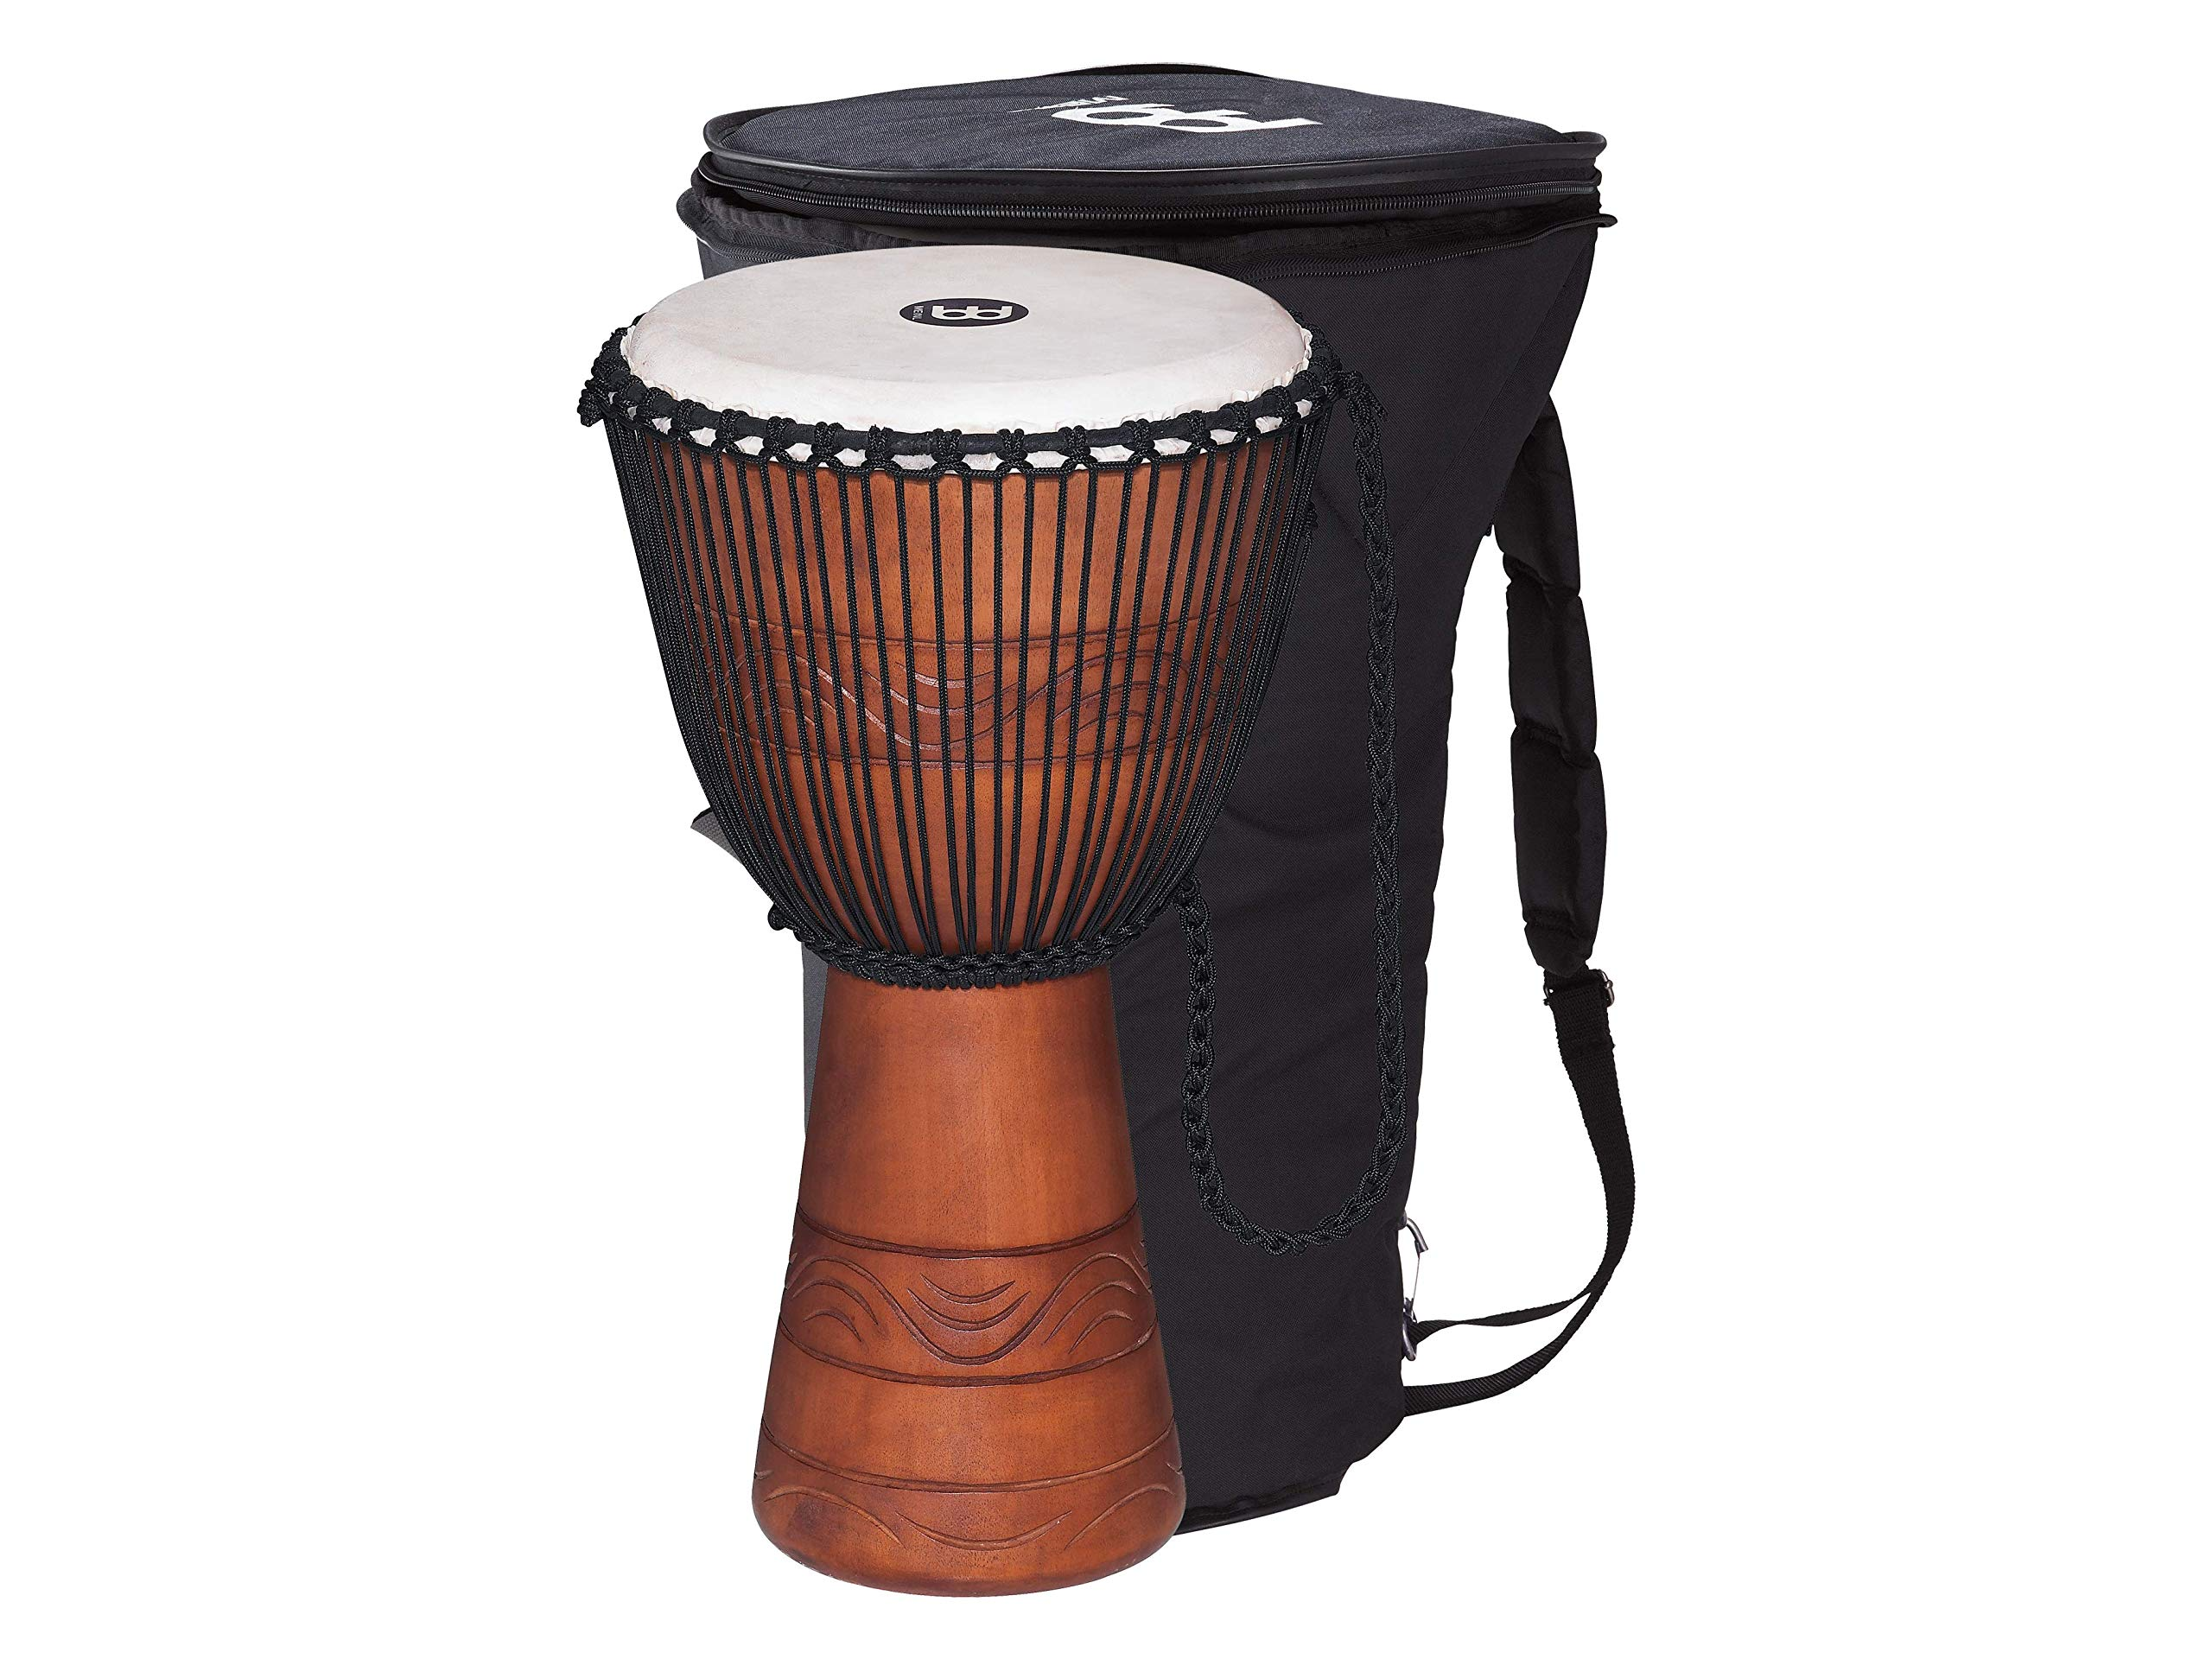 Meinl Percussion ADJ2-L+BAG African Style Rope Tuned 12-Inch Wood Djembe with Bag, Brown by Meinl Percussion (Image #3)